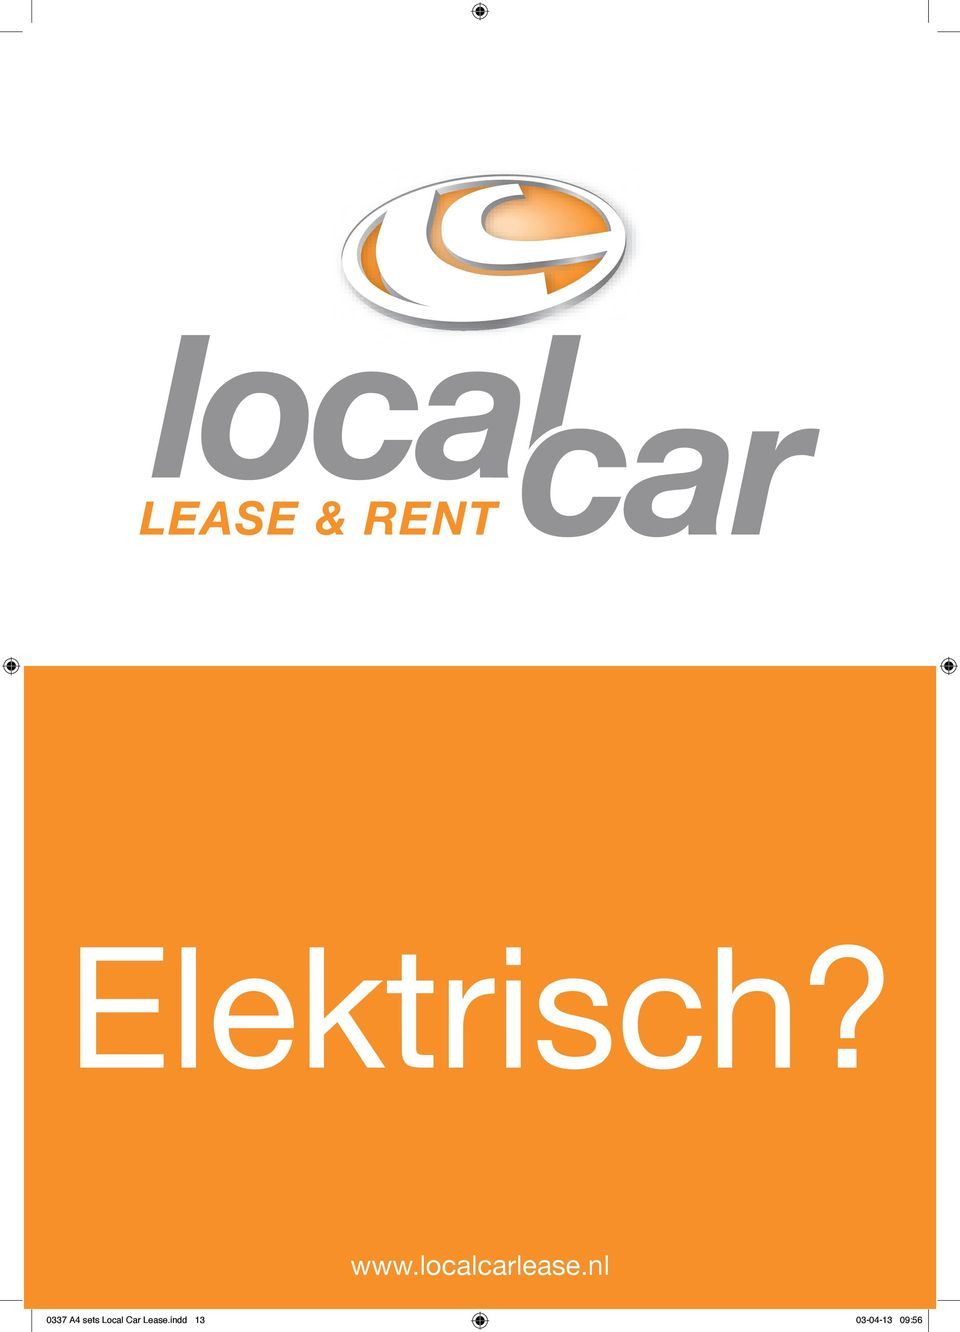 Local Car Lease.